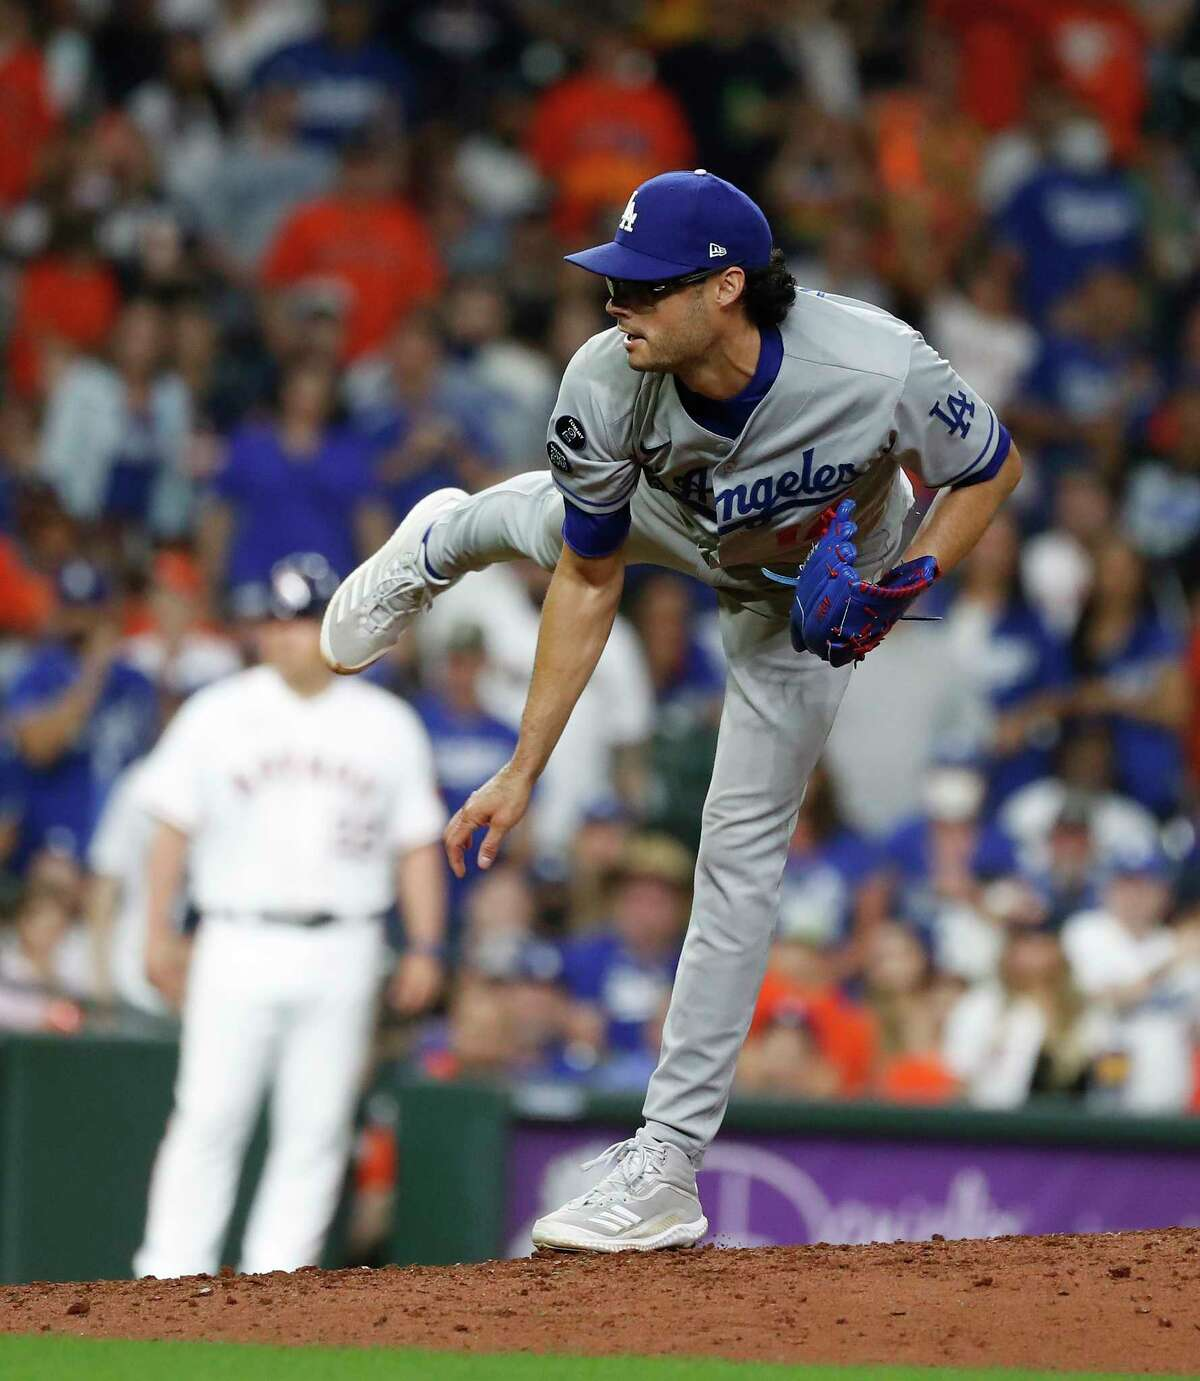 Los Angeles Dodgers relief pitcher Joe Kelly (17) pitches to Houston Astros Jose Altuve during the eighth inning of an MLB baseball game at Minute Maid Park, Tuesday, May 25, 2021, in Houston.